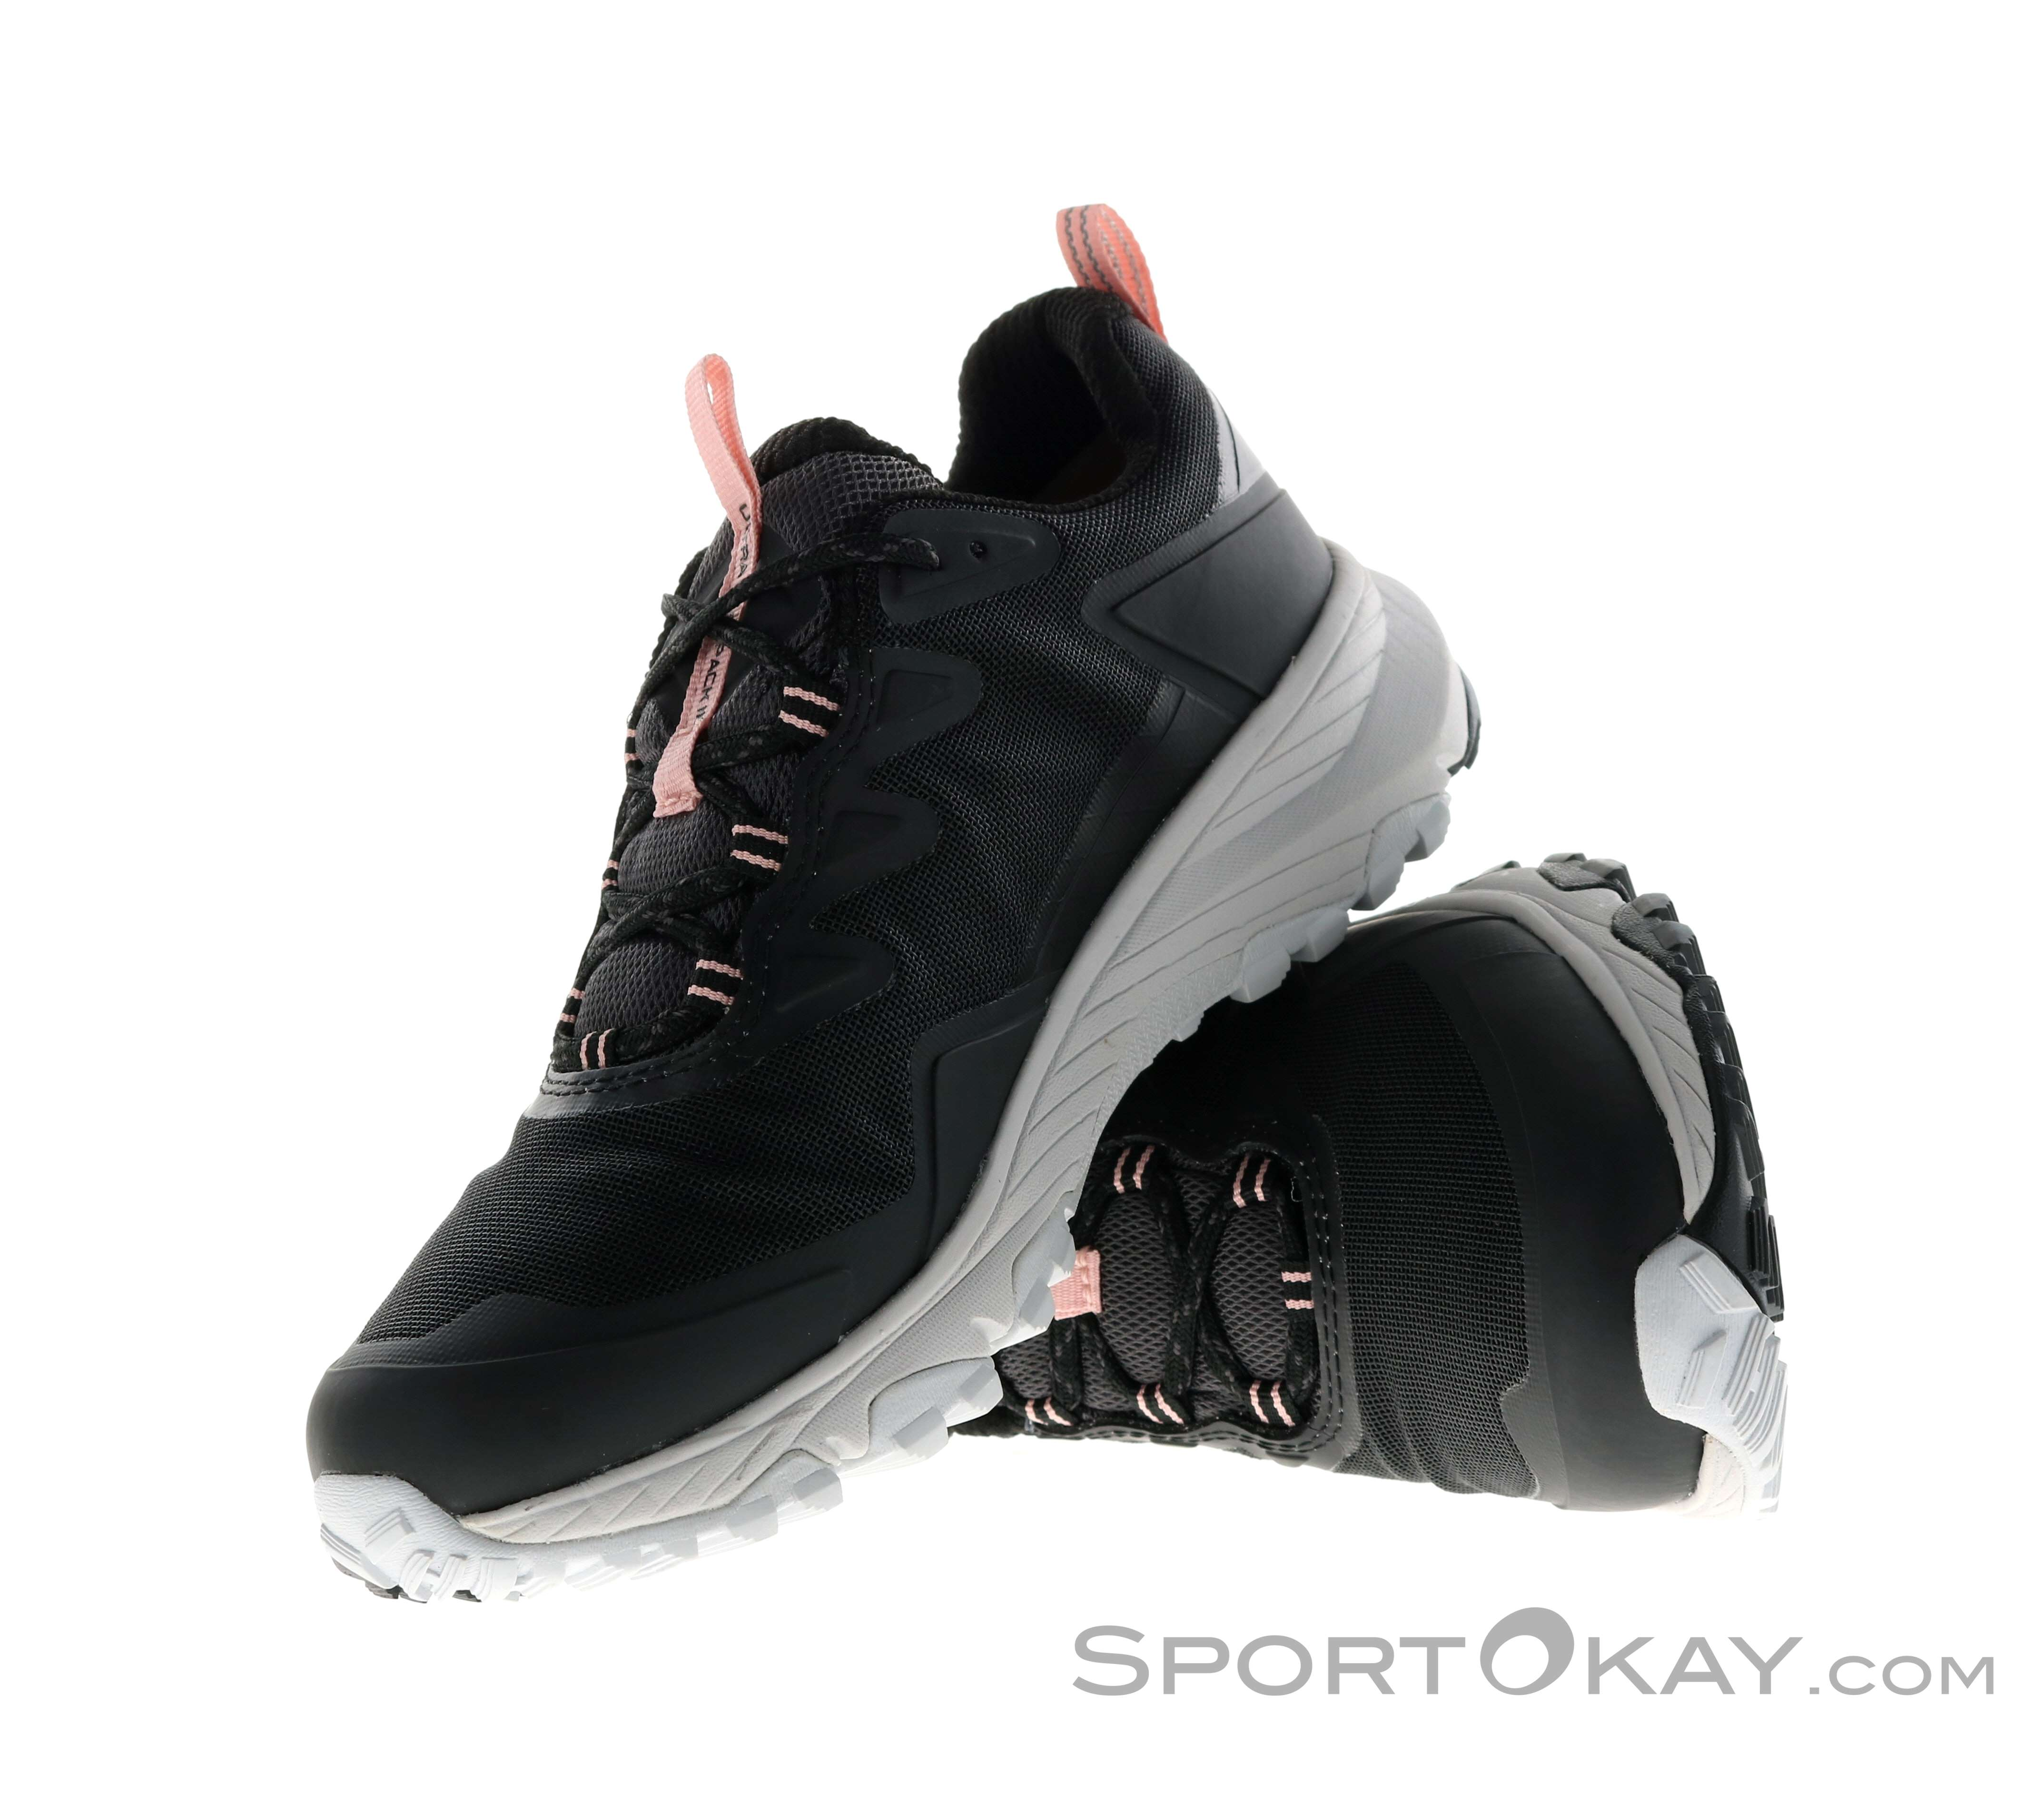 The North Face The North Face Ultra Fastpack III GTX Donna Scarpe Outdoor